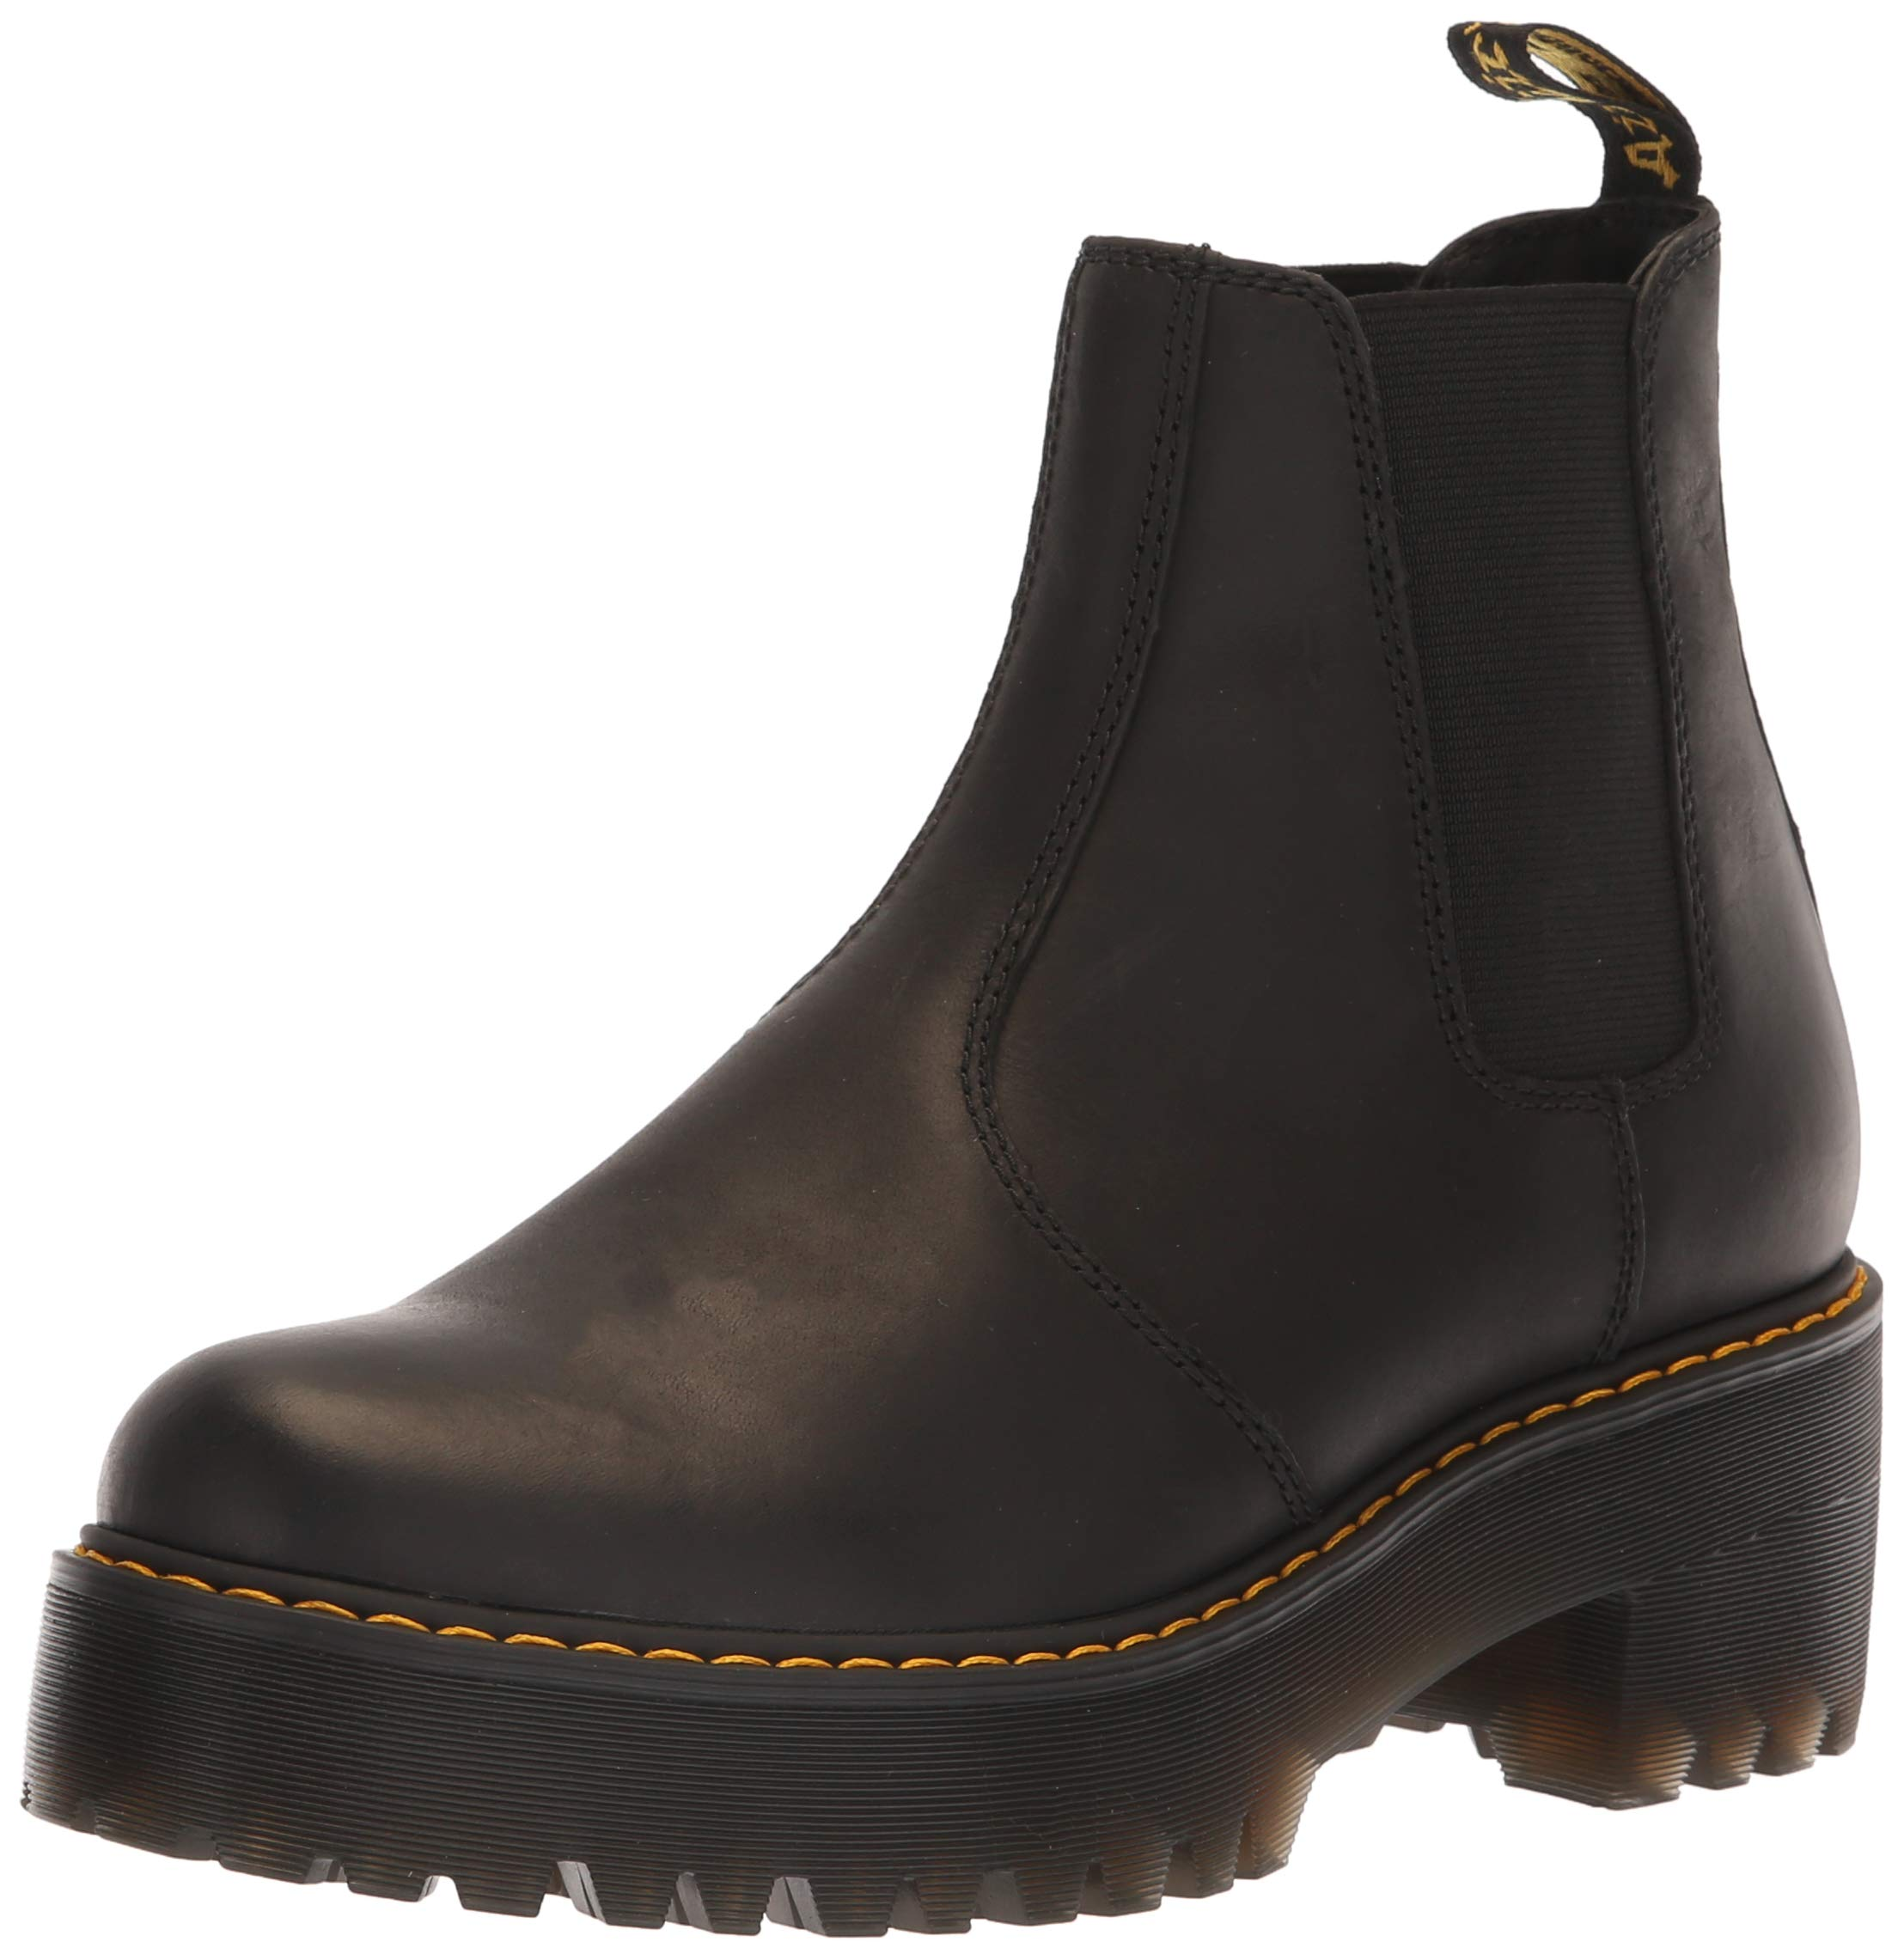 Dr. Martens Women's ROMETTY Fashion Boot, Black, 5 M UK (7 US) by Dr. Martens